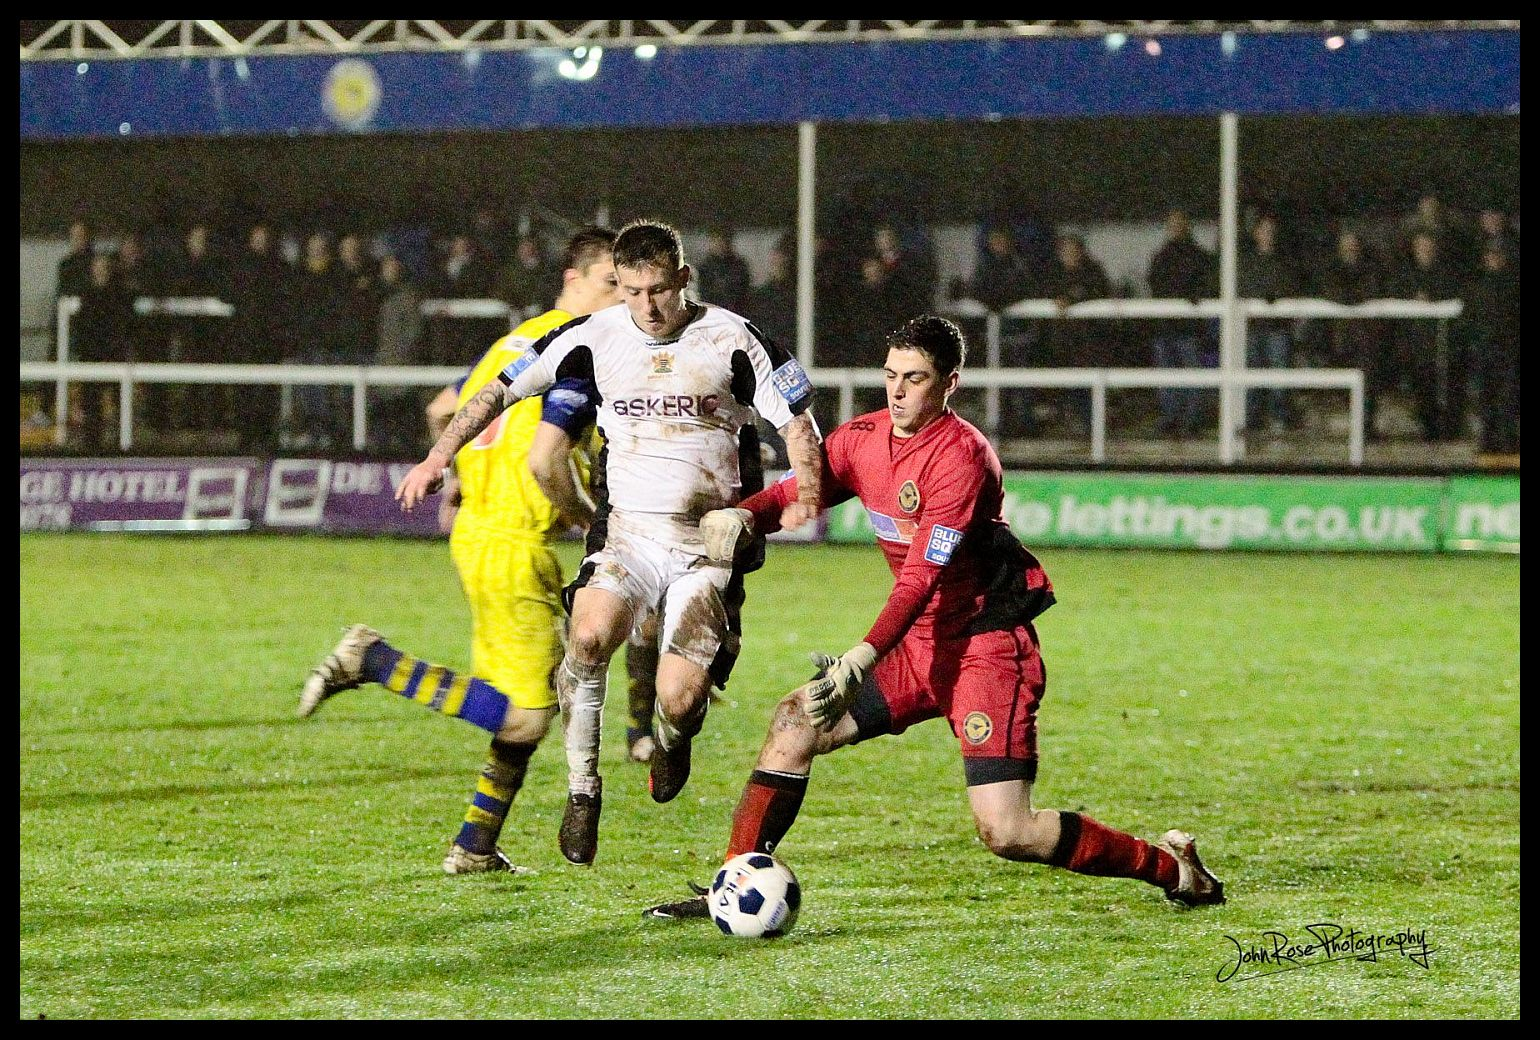 Picture by John Rose: Jamie White scored a conciliation goal for Salisbury during their 2-1 defeat at Farnborough on Tuesday night.